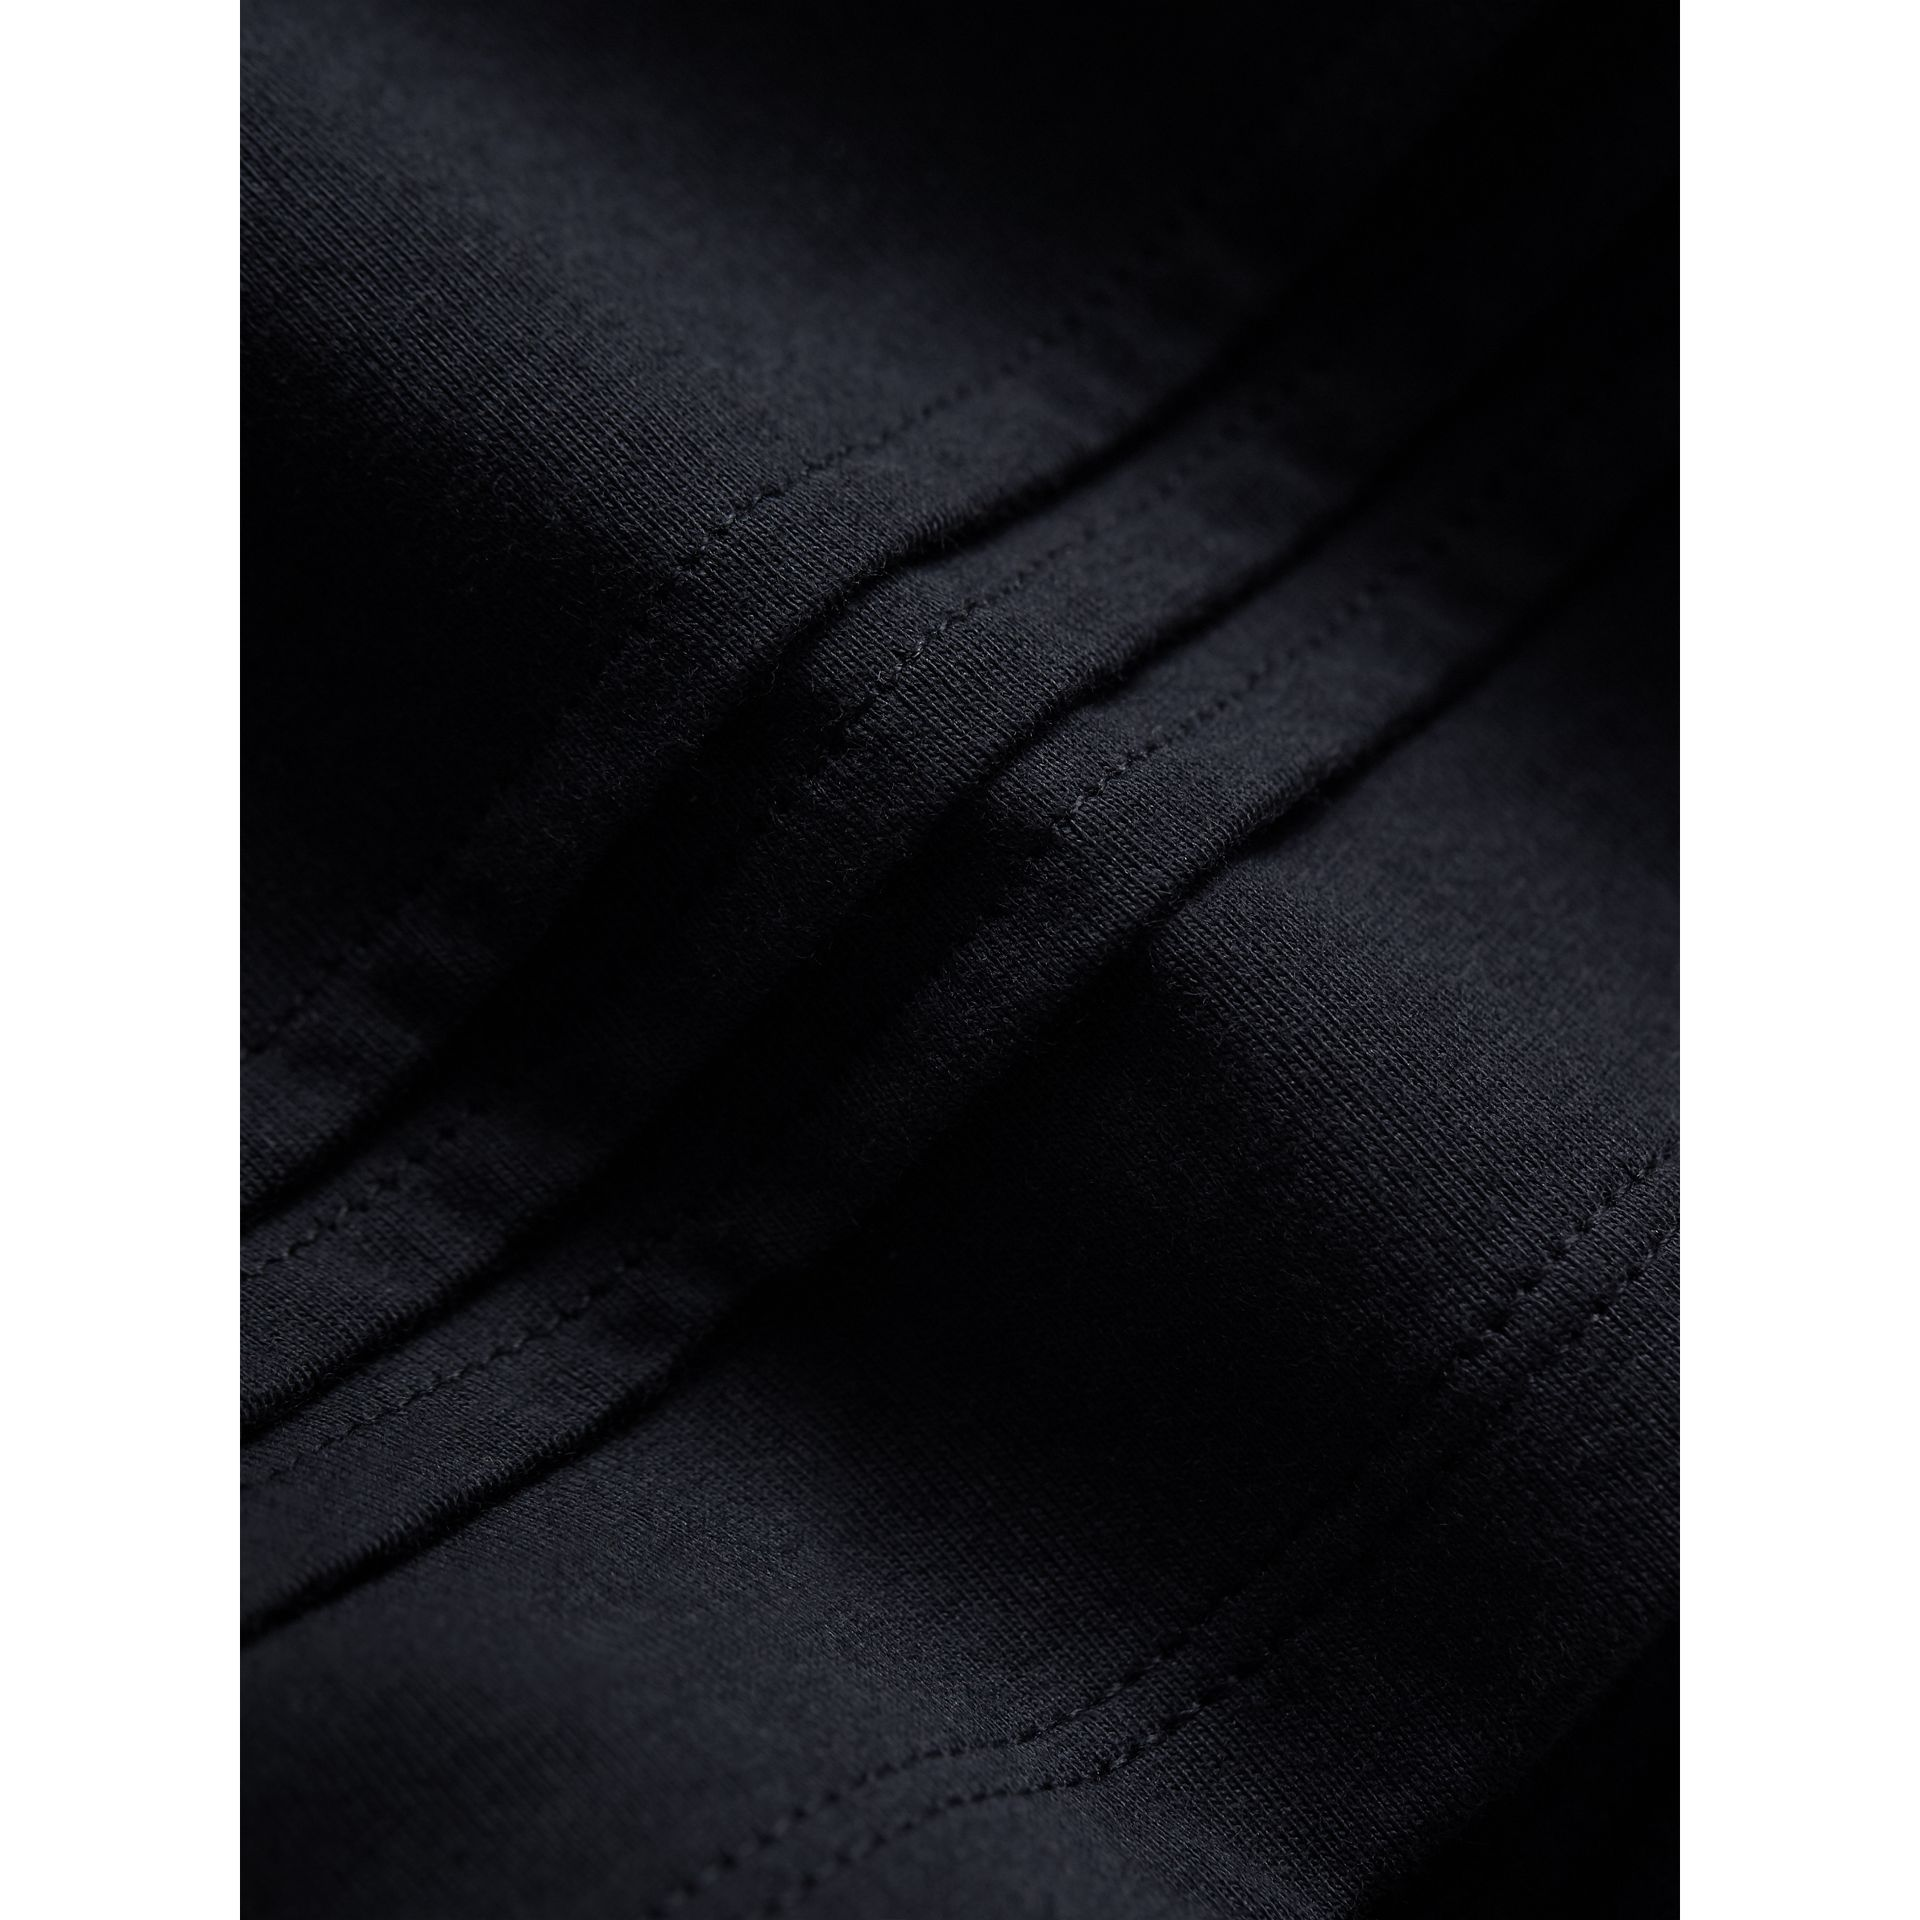 Pleat and Check Detail Cotton Top in Navy | Burberry - gallery image 1